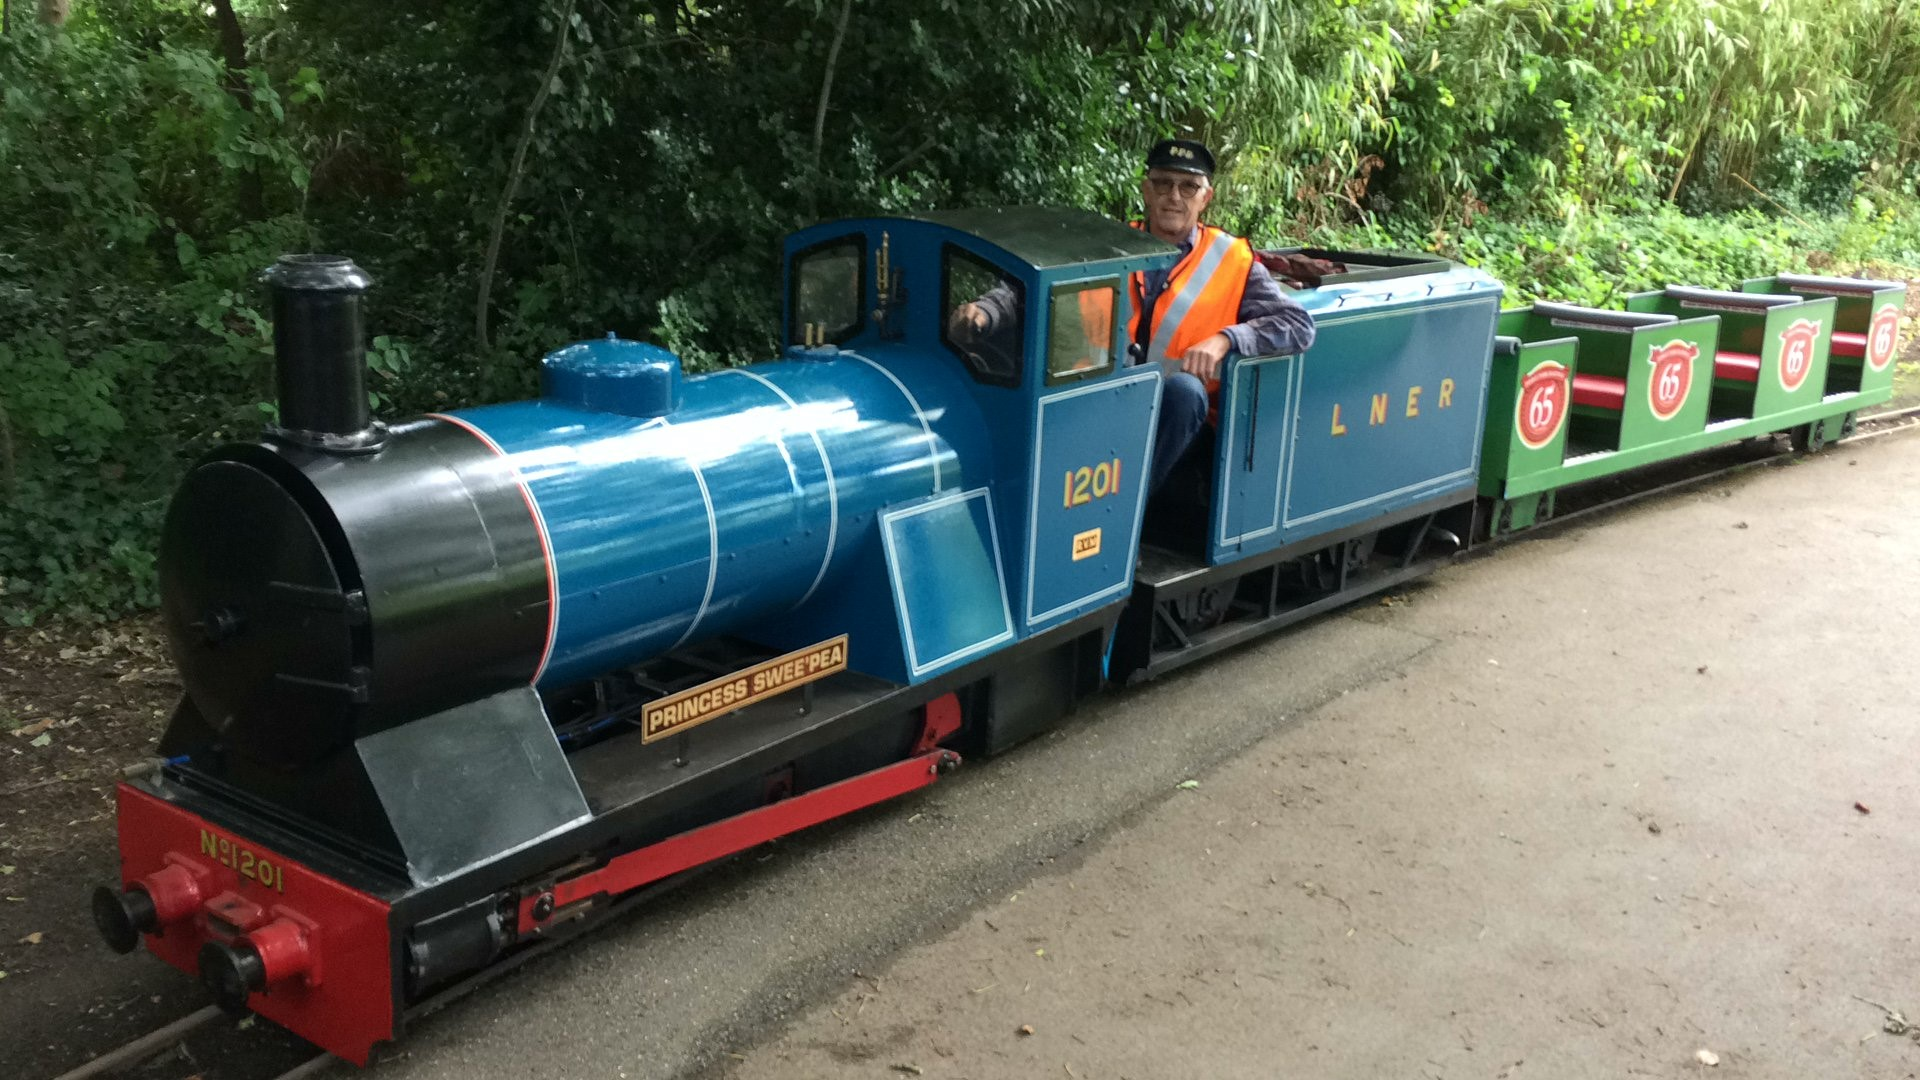 Poole Park mini railway future 'in doubt'